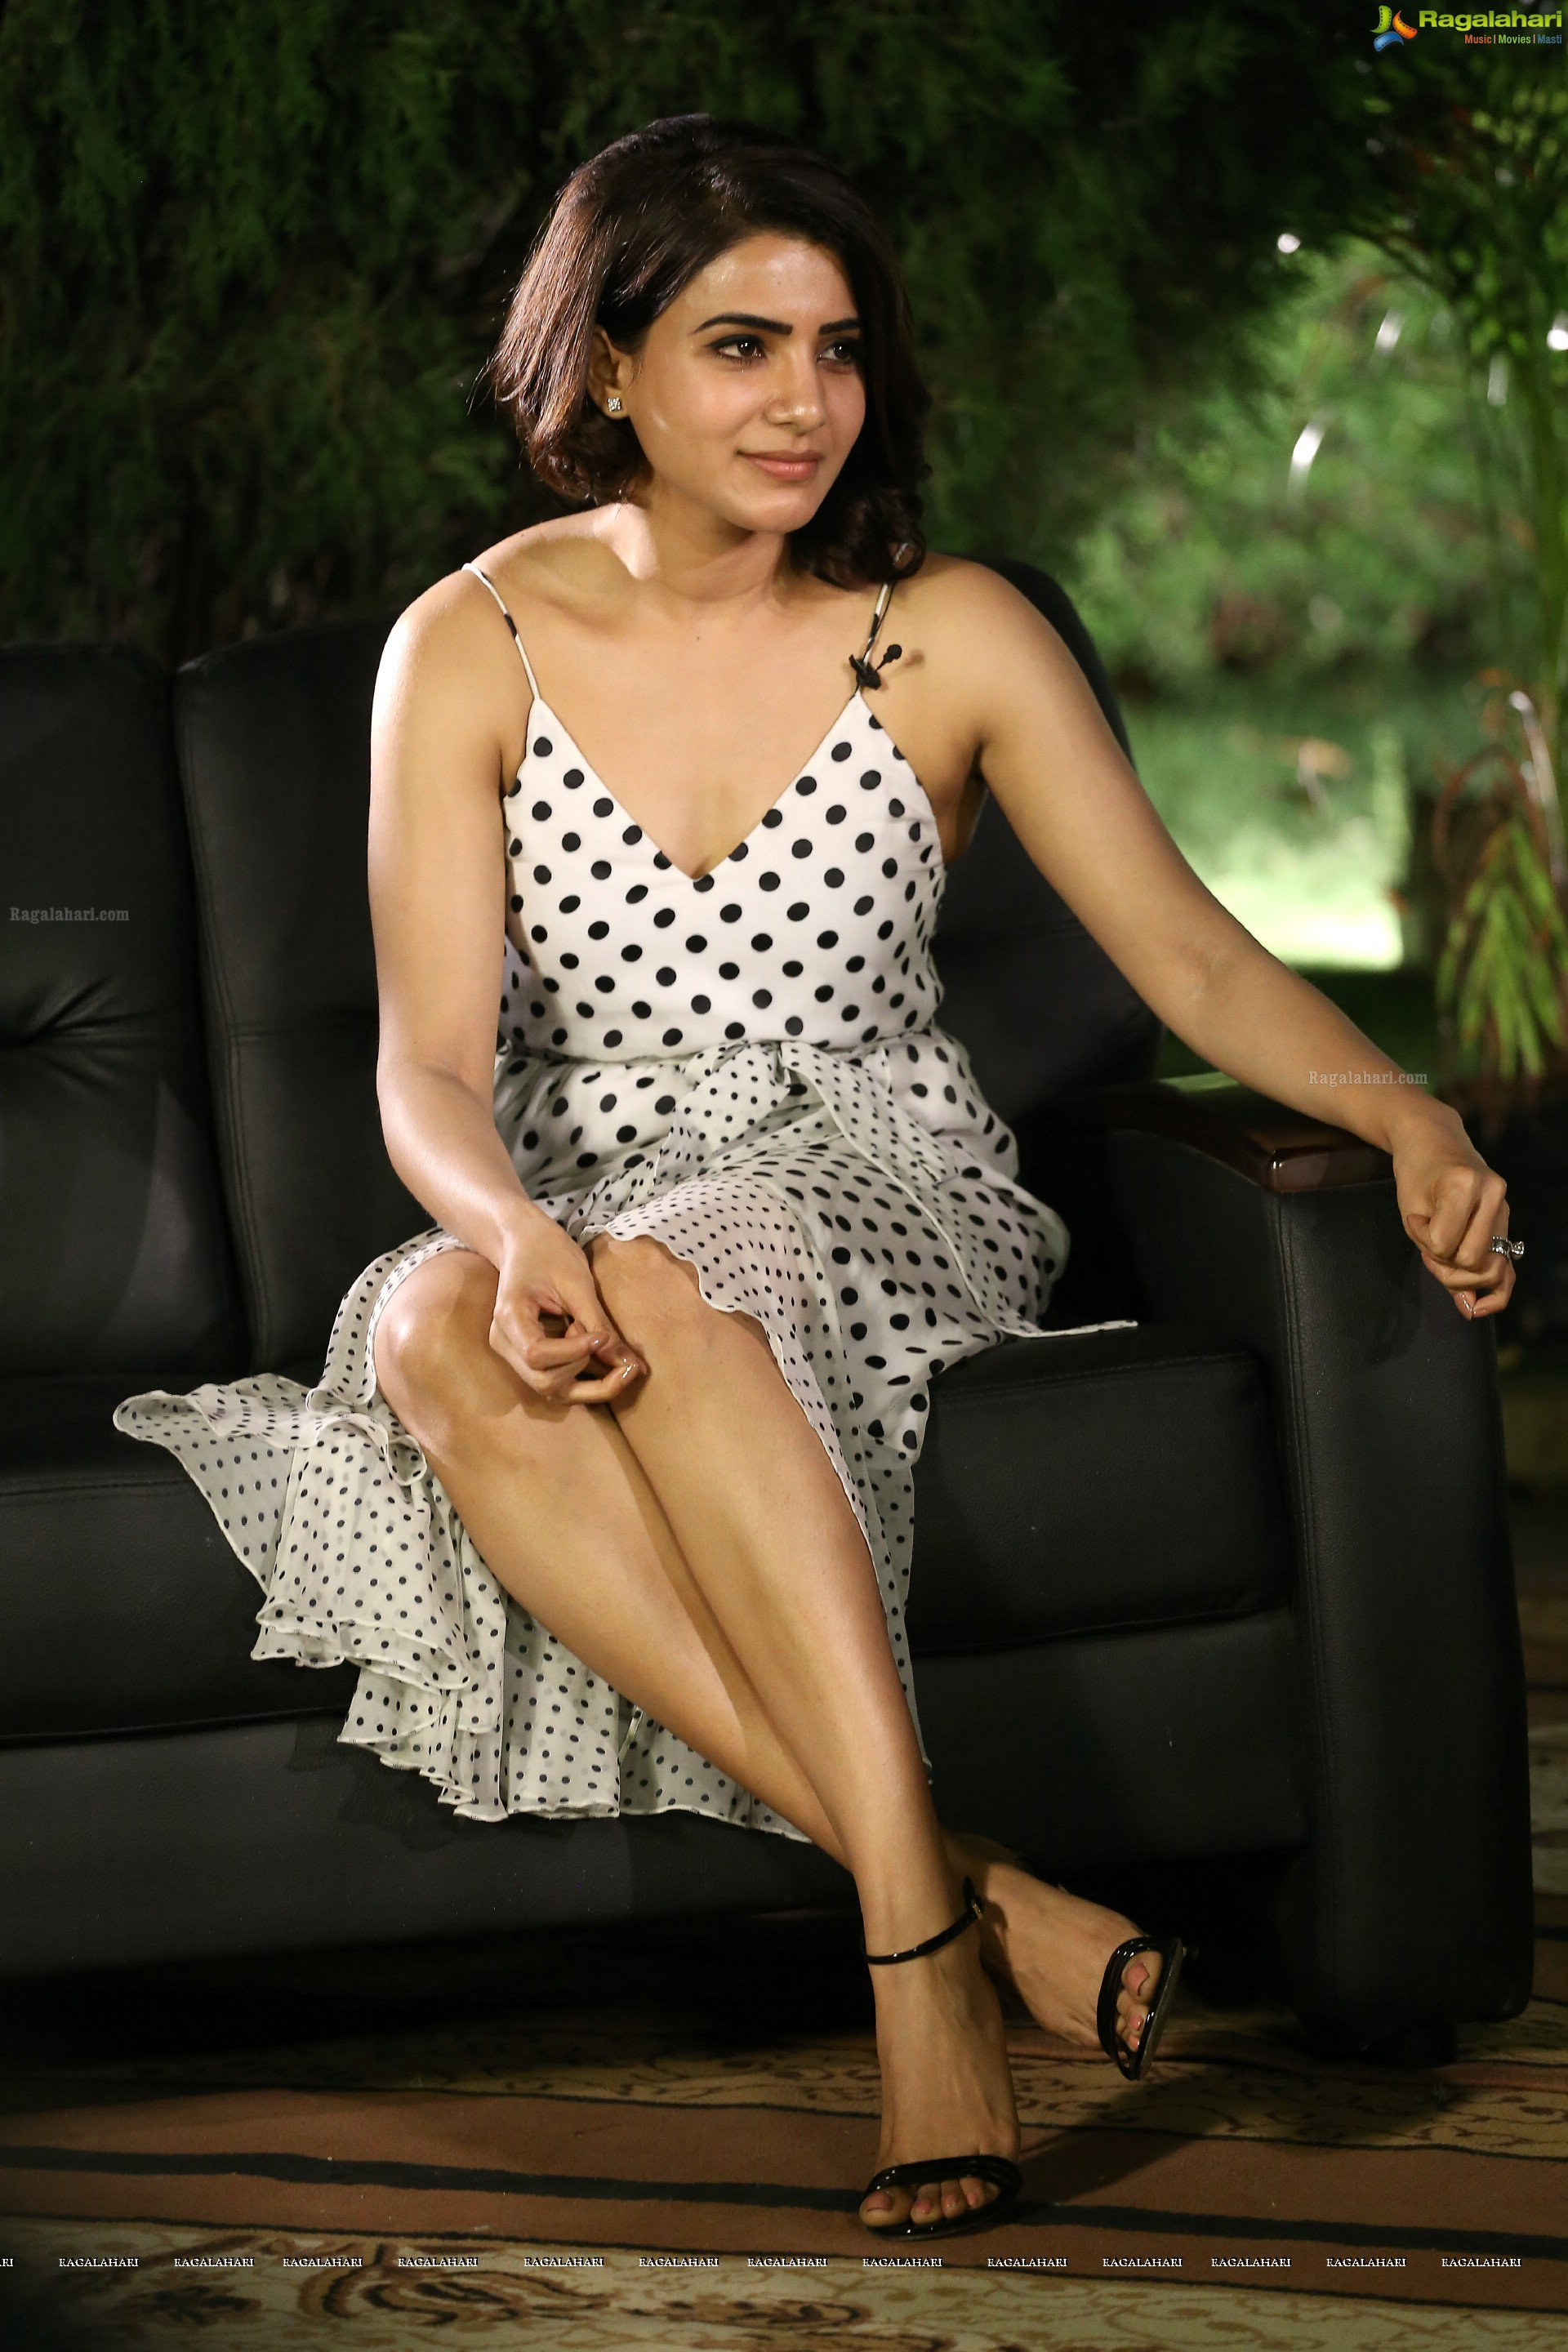 samantha ruth prabhu's feet << wikifeet